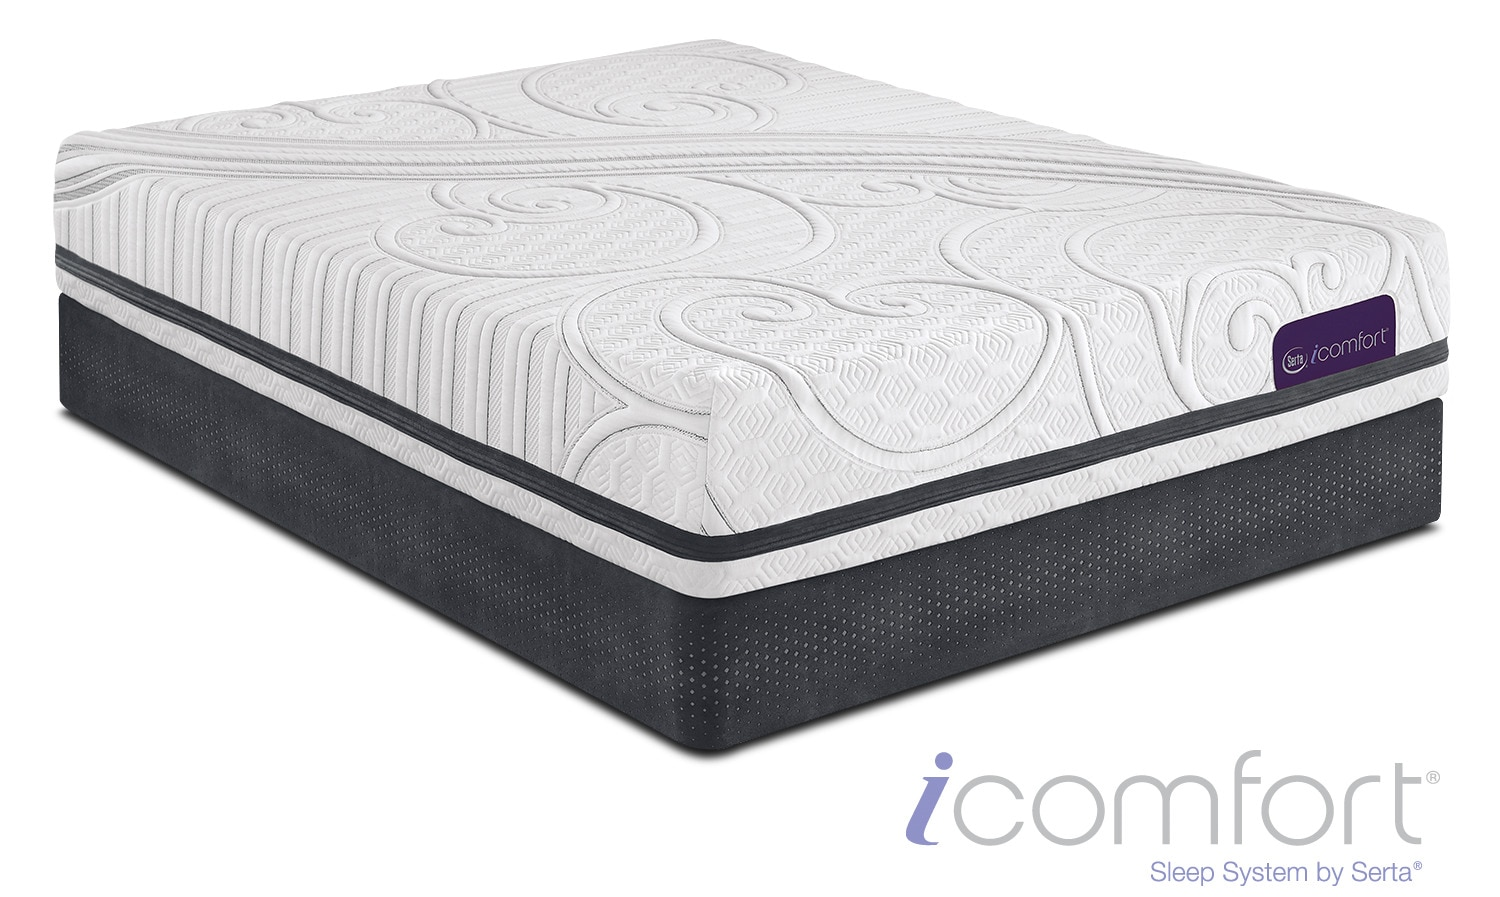 Mattresses and Bedding - Savant III Plush California King Mattress and Split Foundation Set